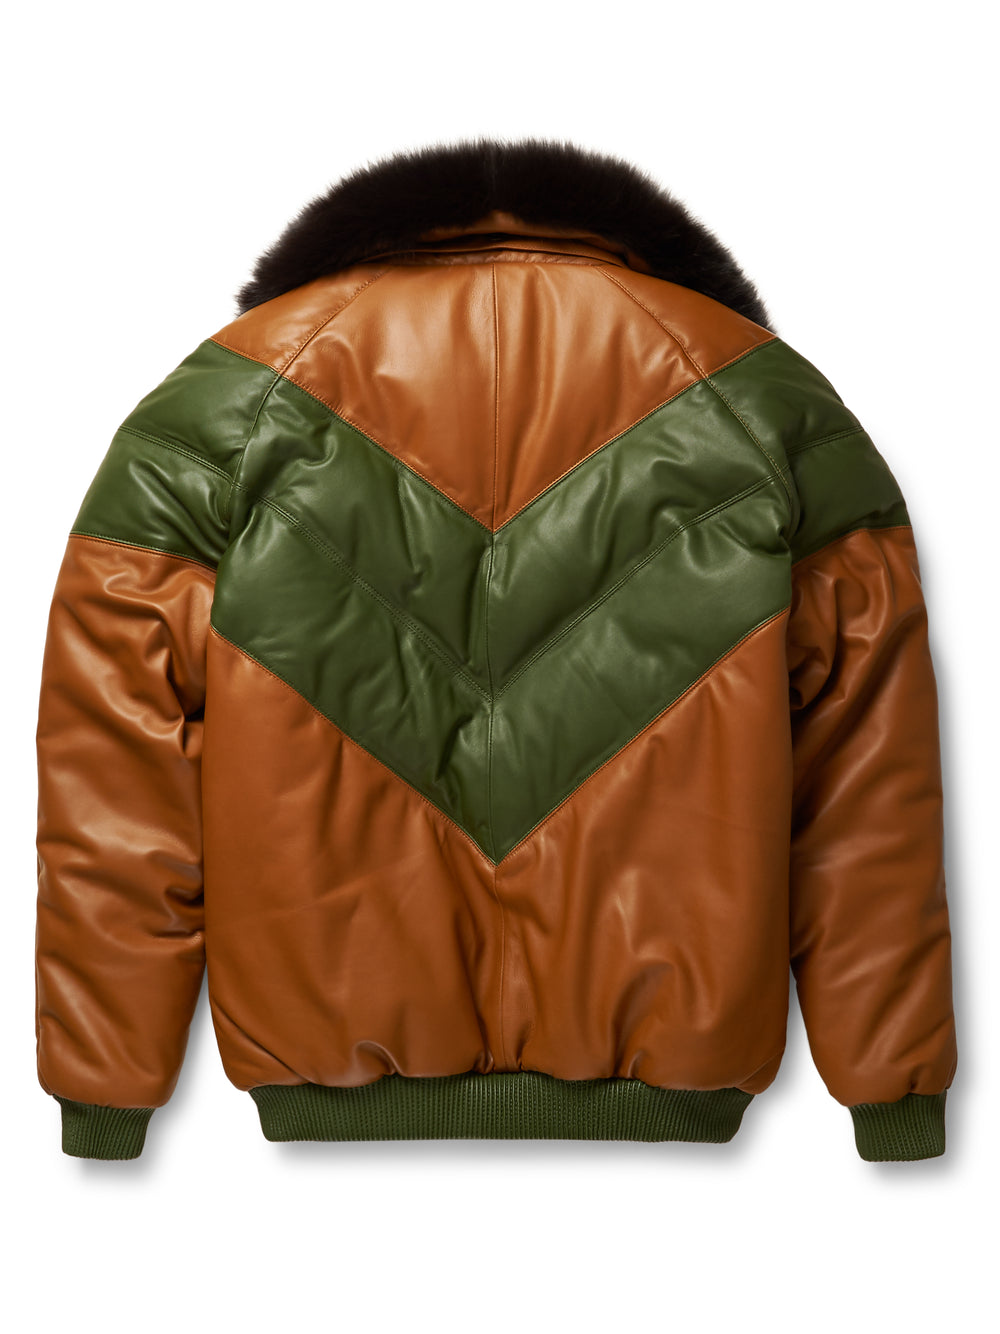 1e509e3a1 Goose Country V-Bomber Two-Tone: Brown/Green Leather